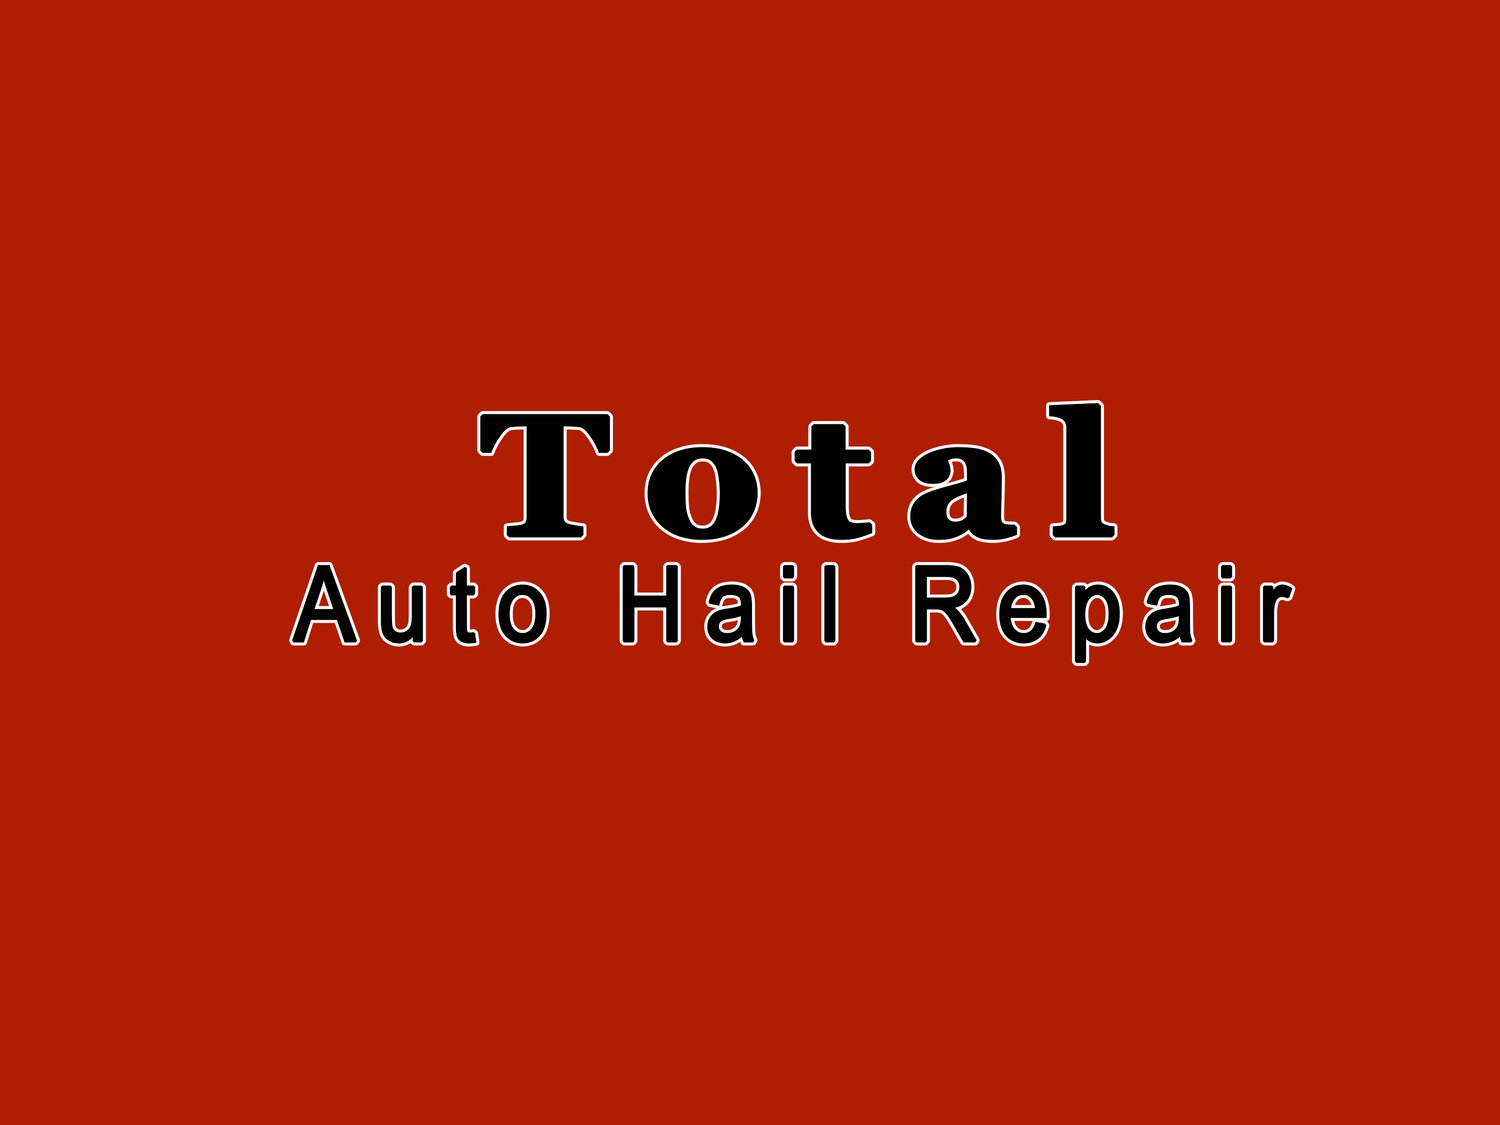 totalautohailrepair.com